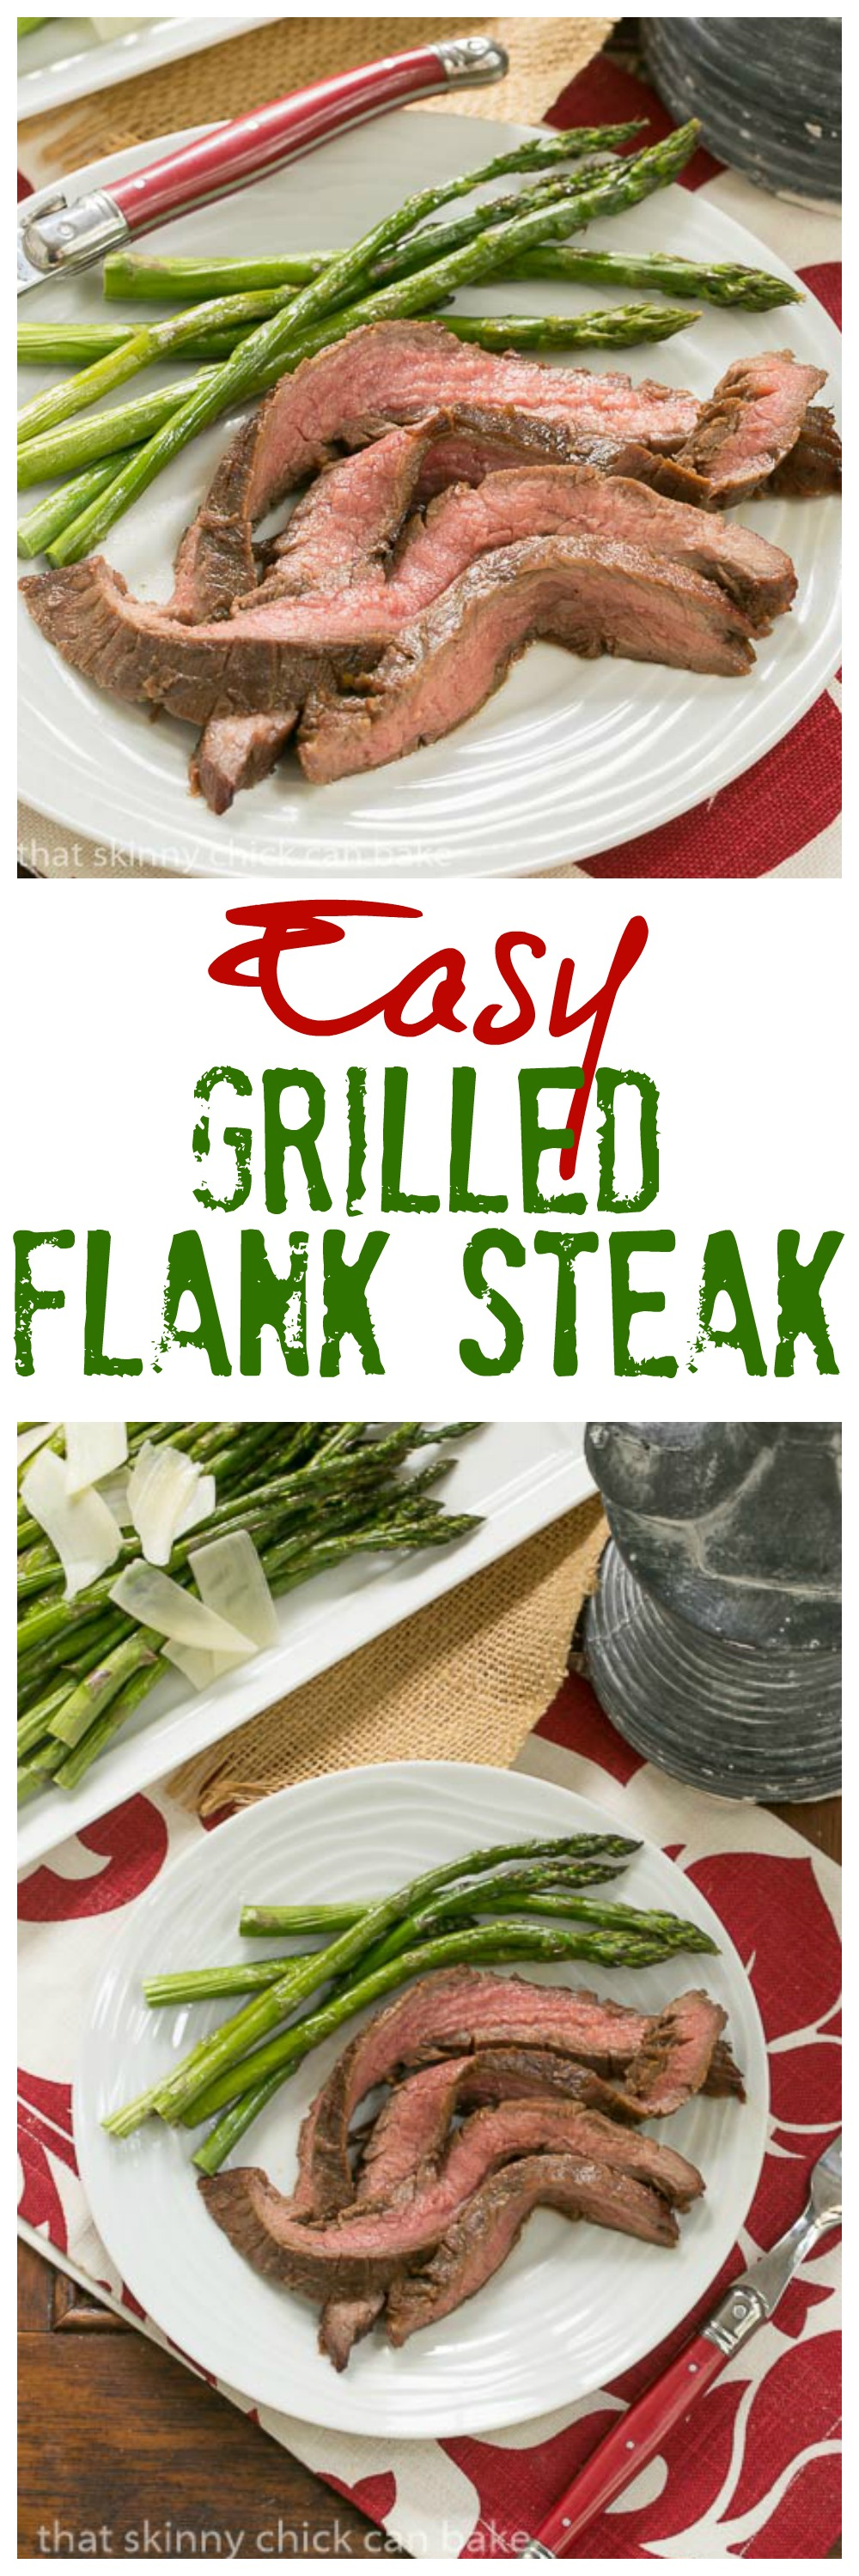 Best Easy Grilled Flank Steak